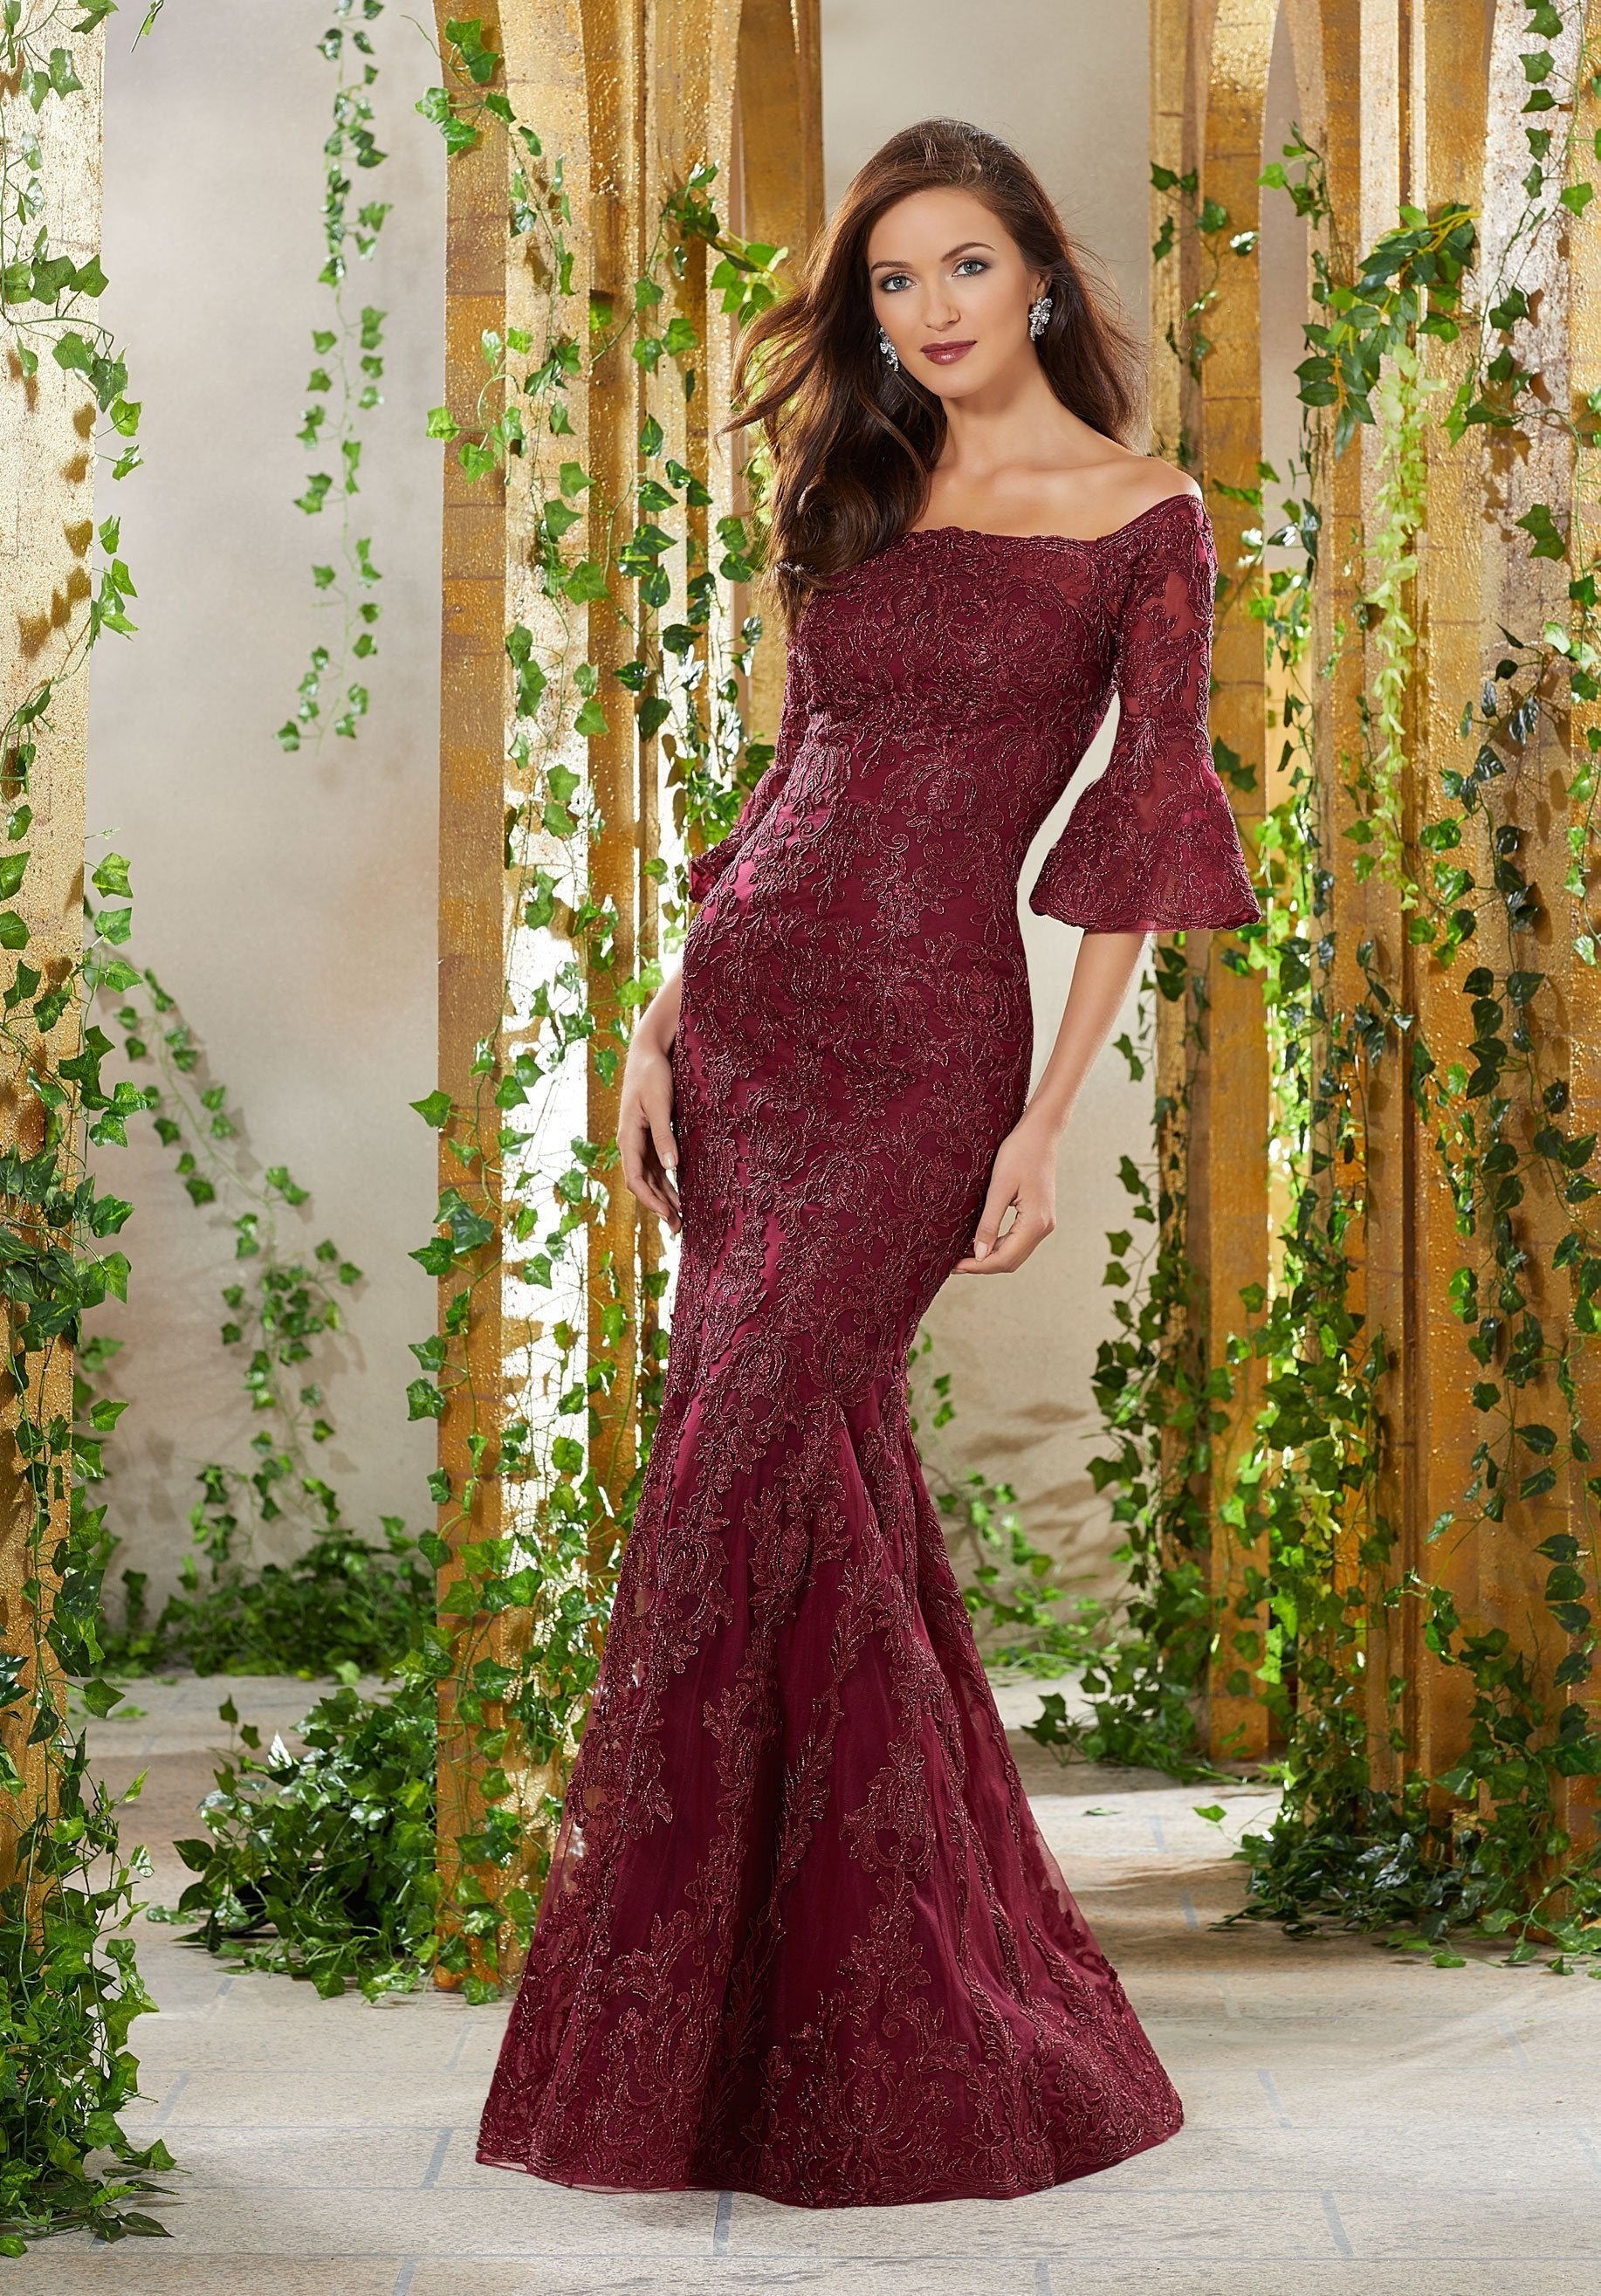 MGNY By Mori Lee - 71930 Metallic Lace Appliqued Off-Shoulder Dress In Red